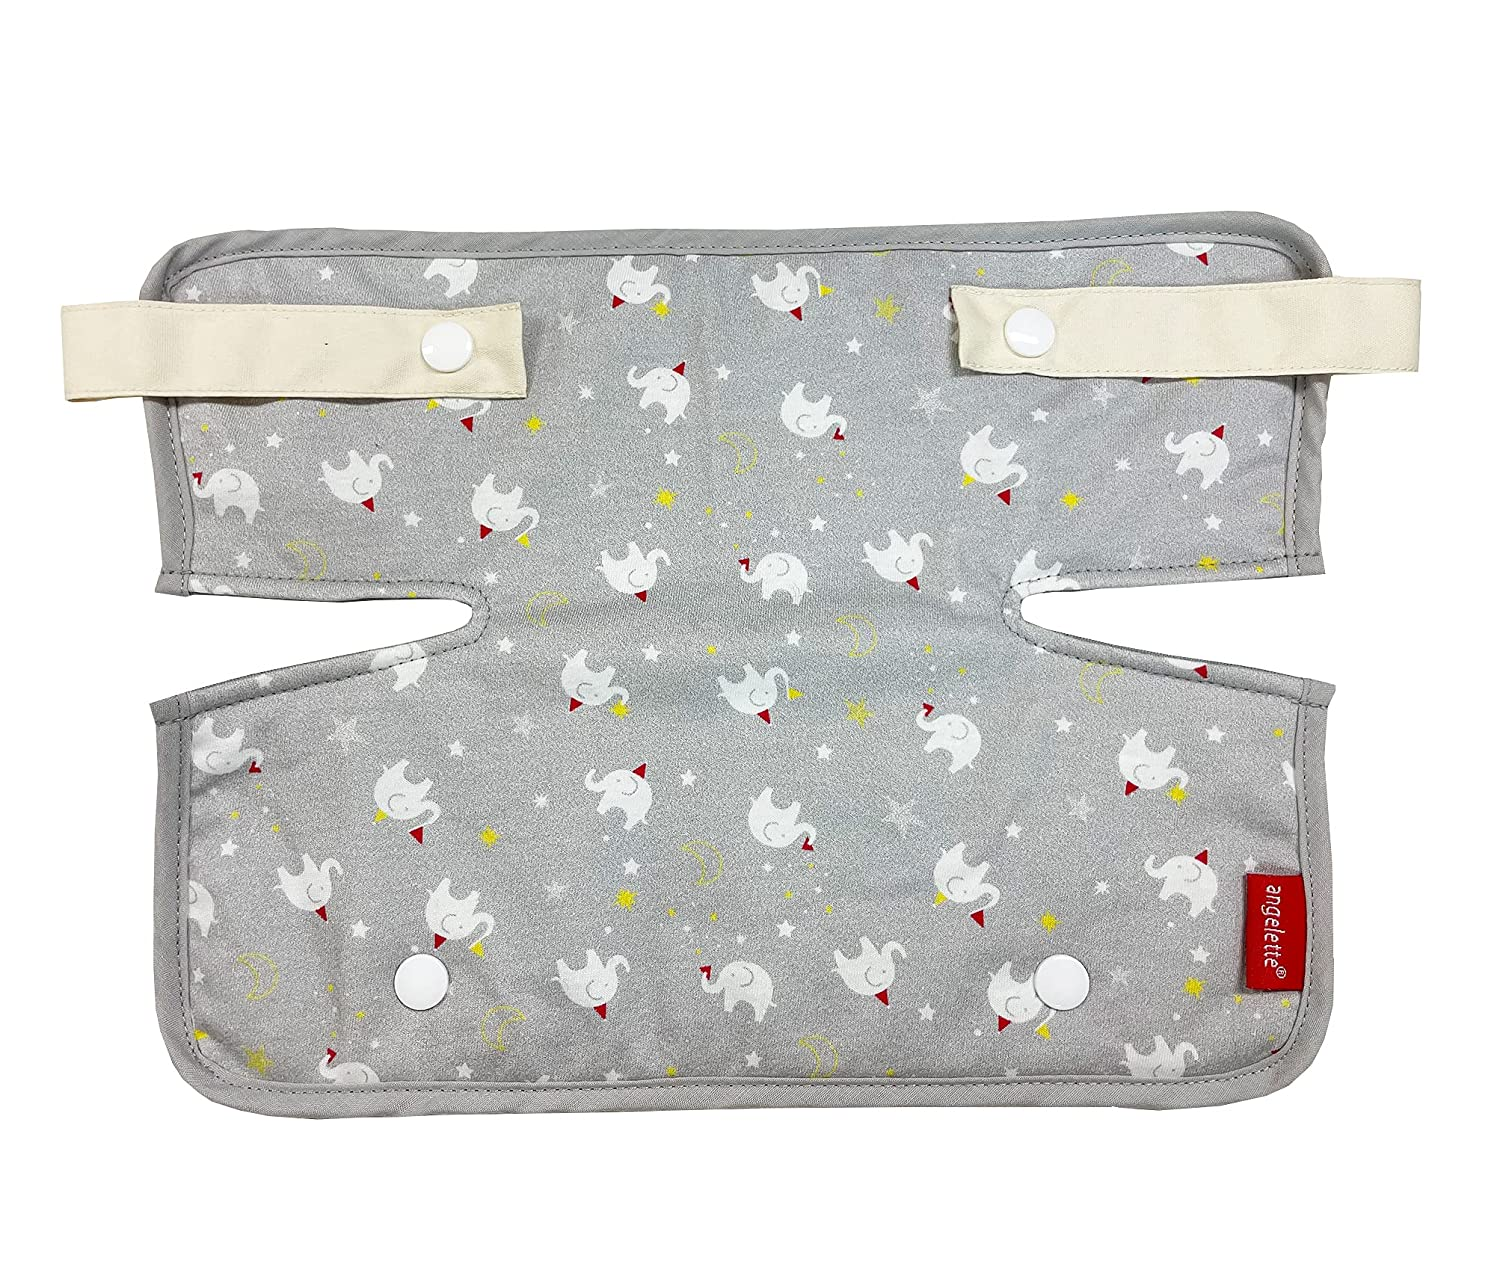 Drool and Teething Cotton Pad Chest Cover for Baby Carrier Chest Bib (Gray Elephant)